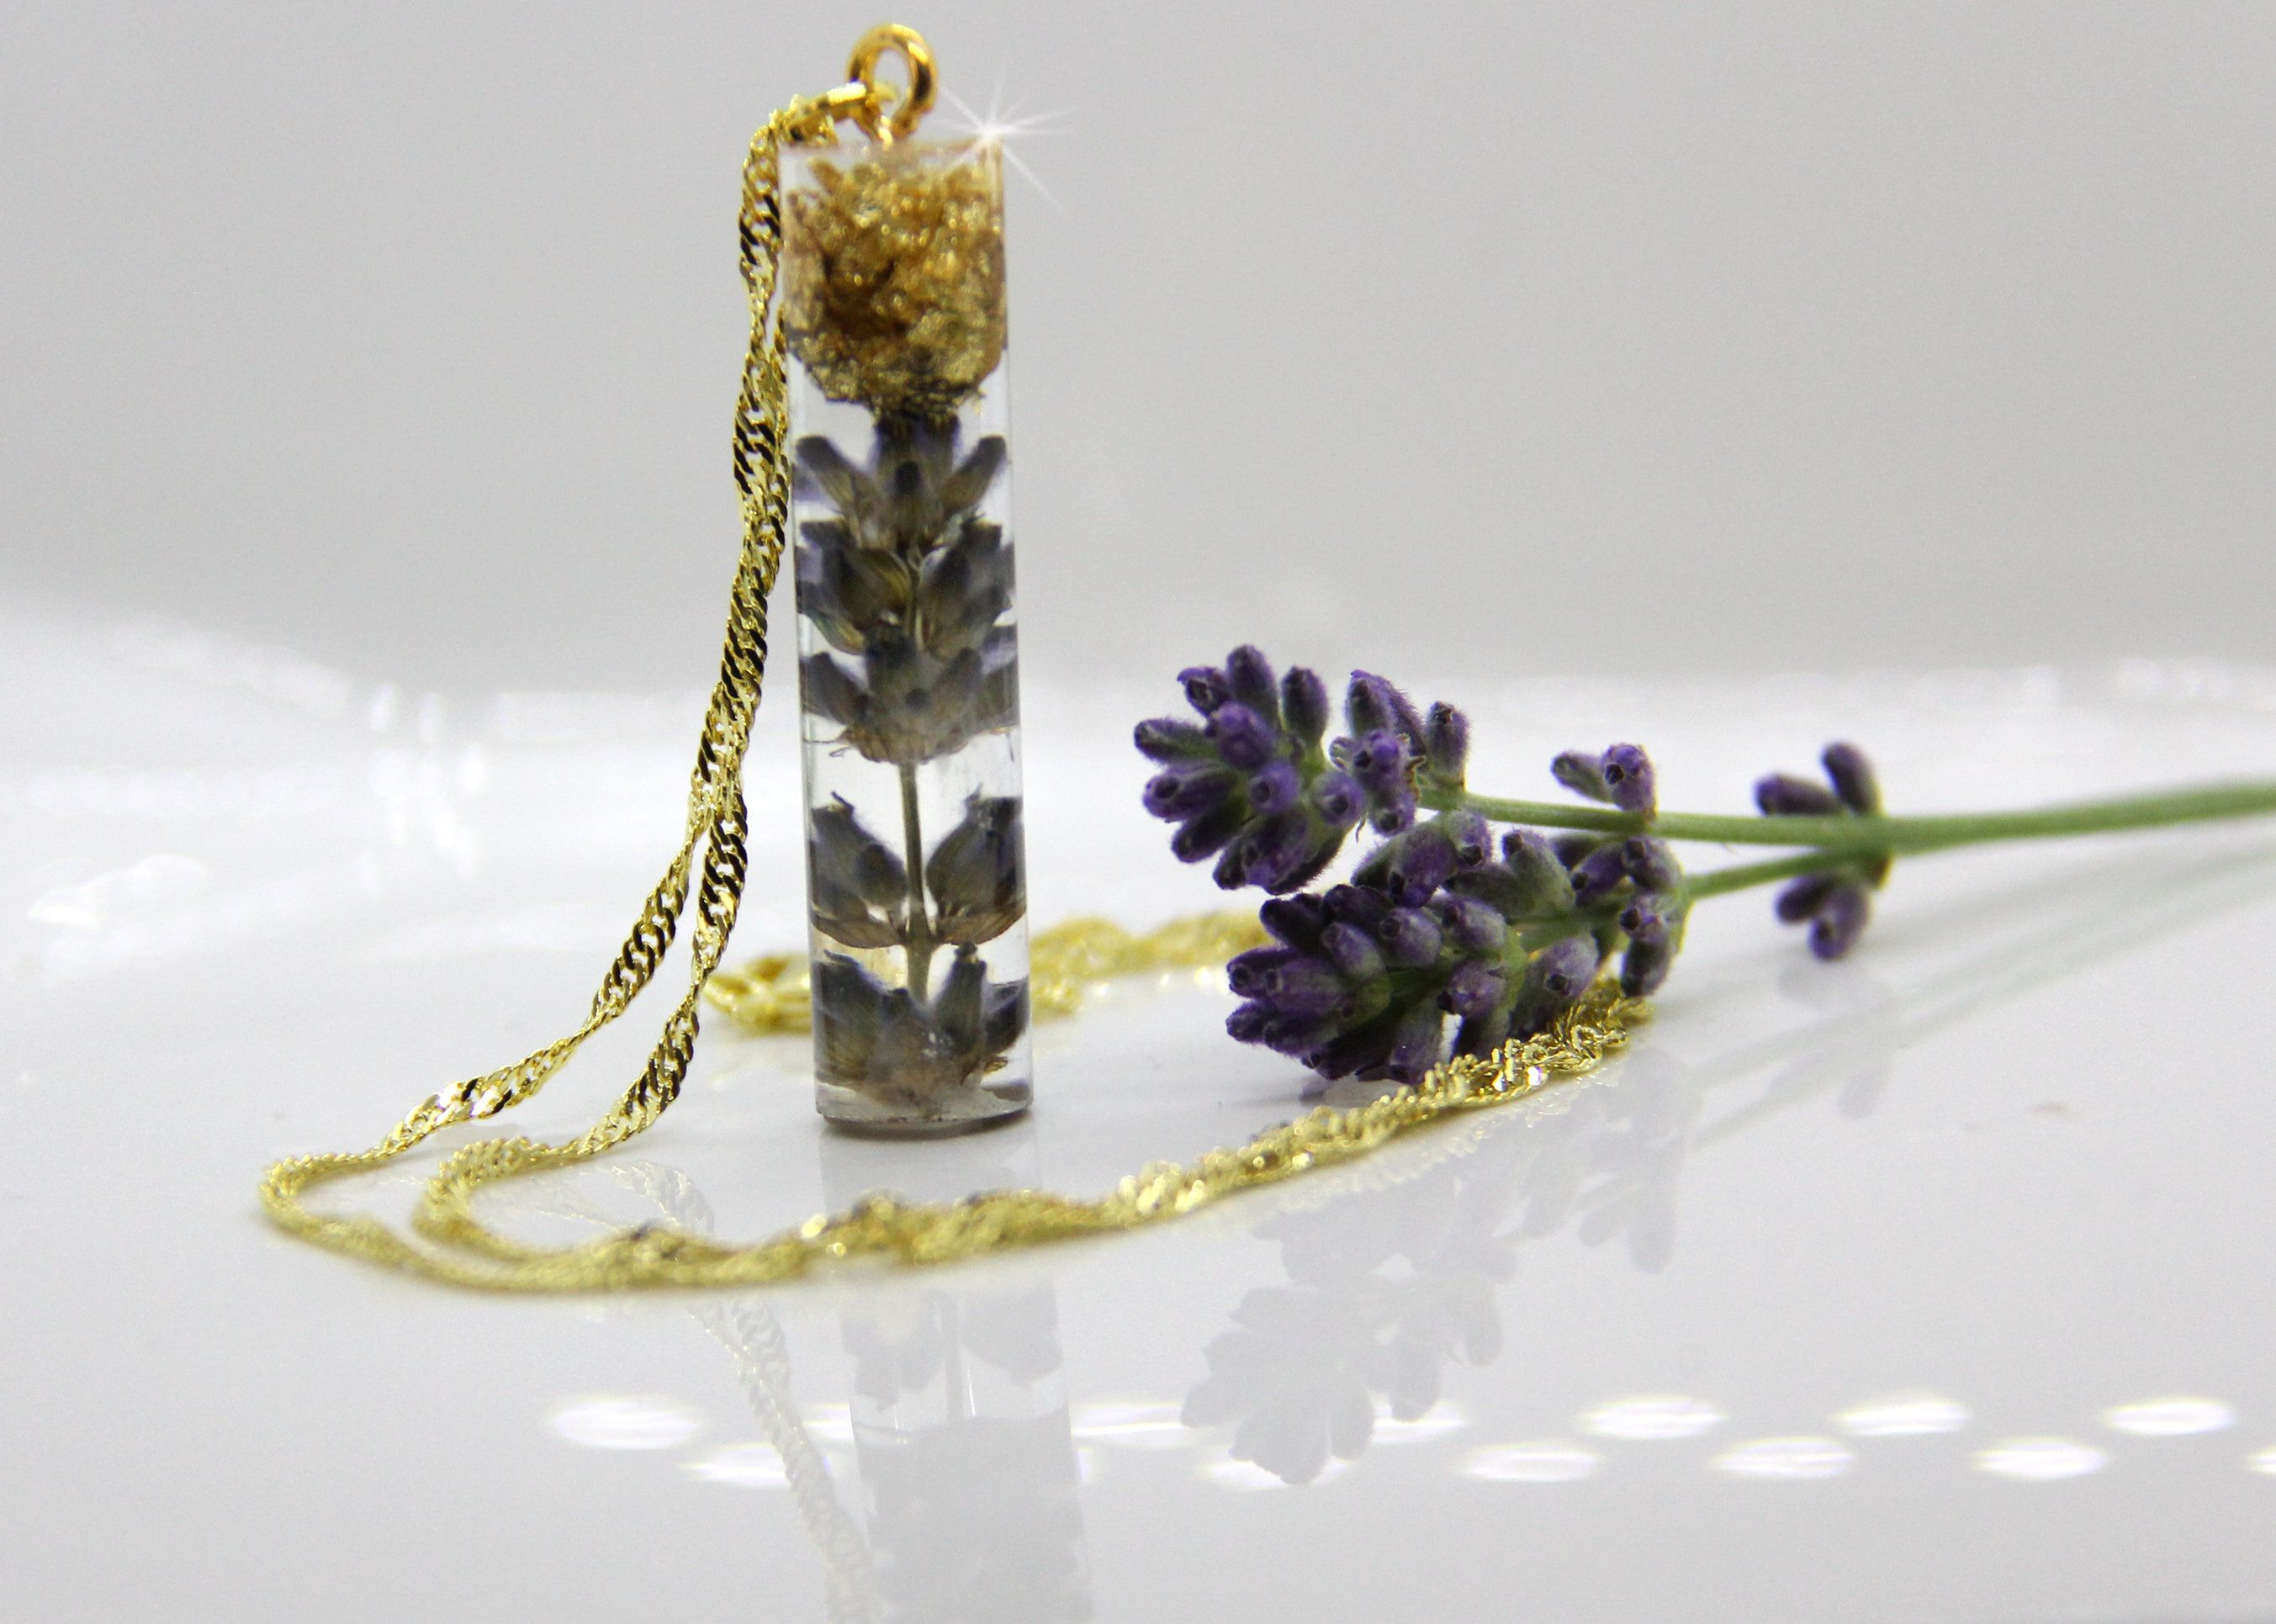 Real Lavender Necklace Dried Flower Necklace Pressed Flower Necklace Lavender Locket Botanical Jewelry In 2020 Pressed Flower Necklace Lavender Necklace Botanical Jewelry